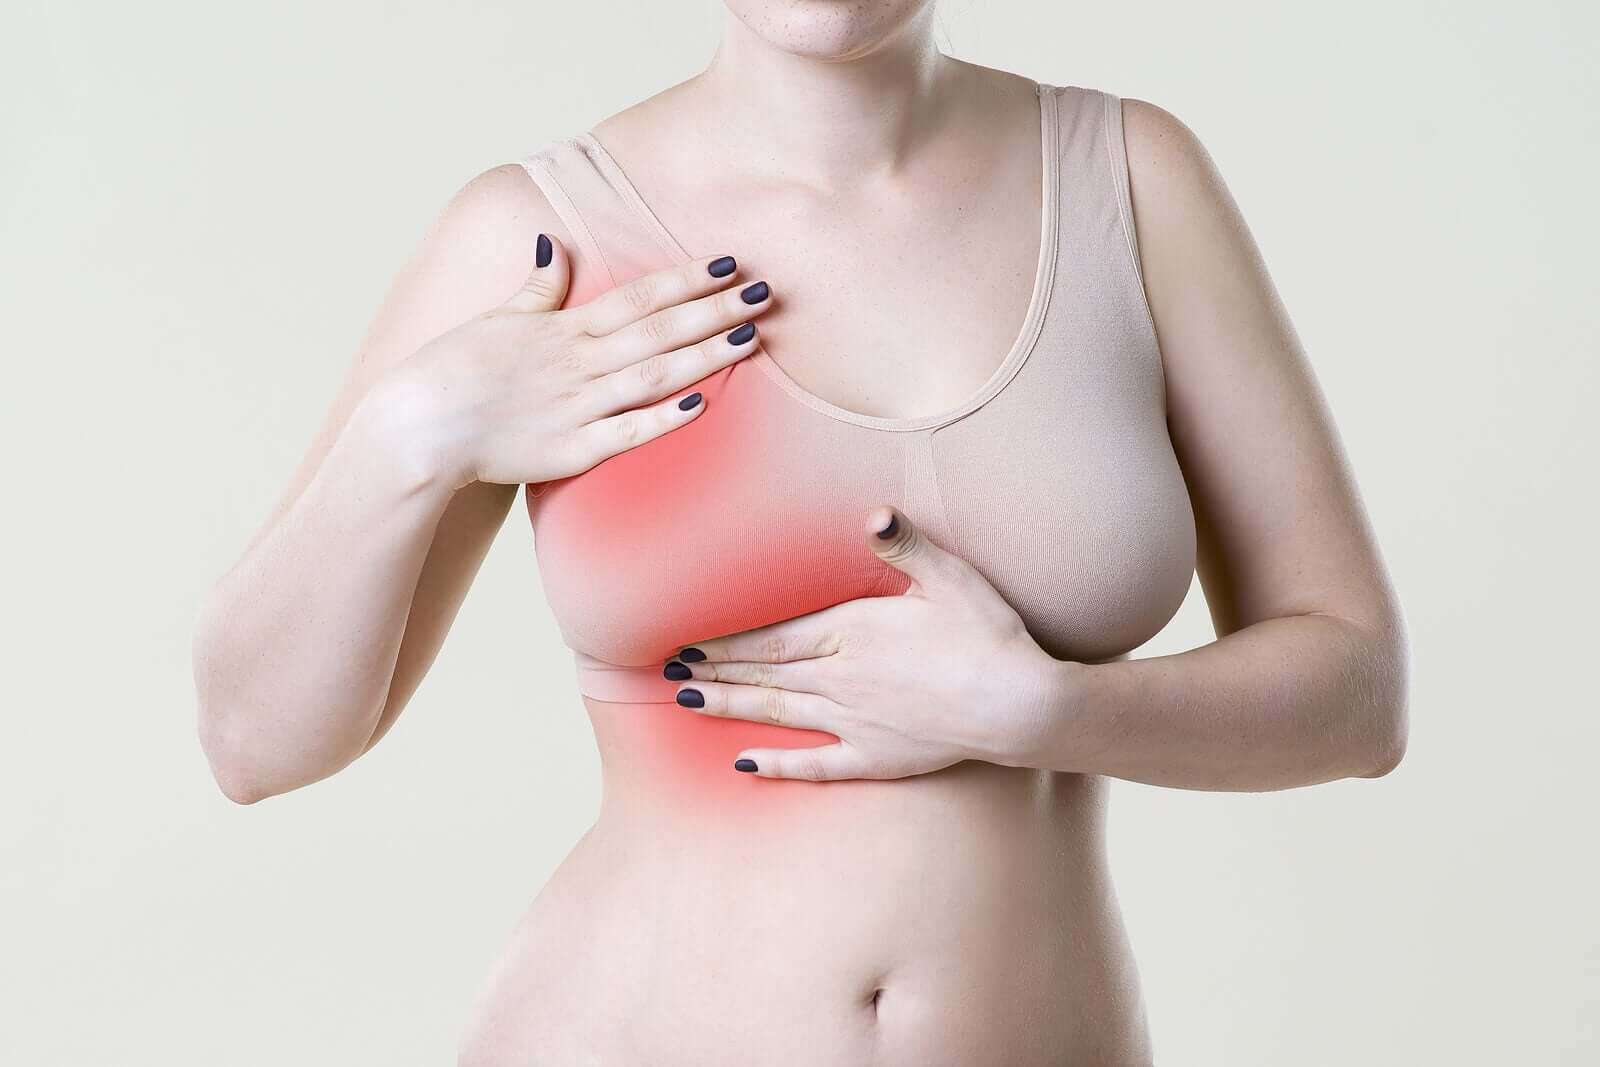 A woman with breast pain.